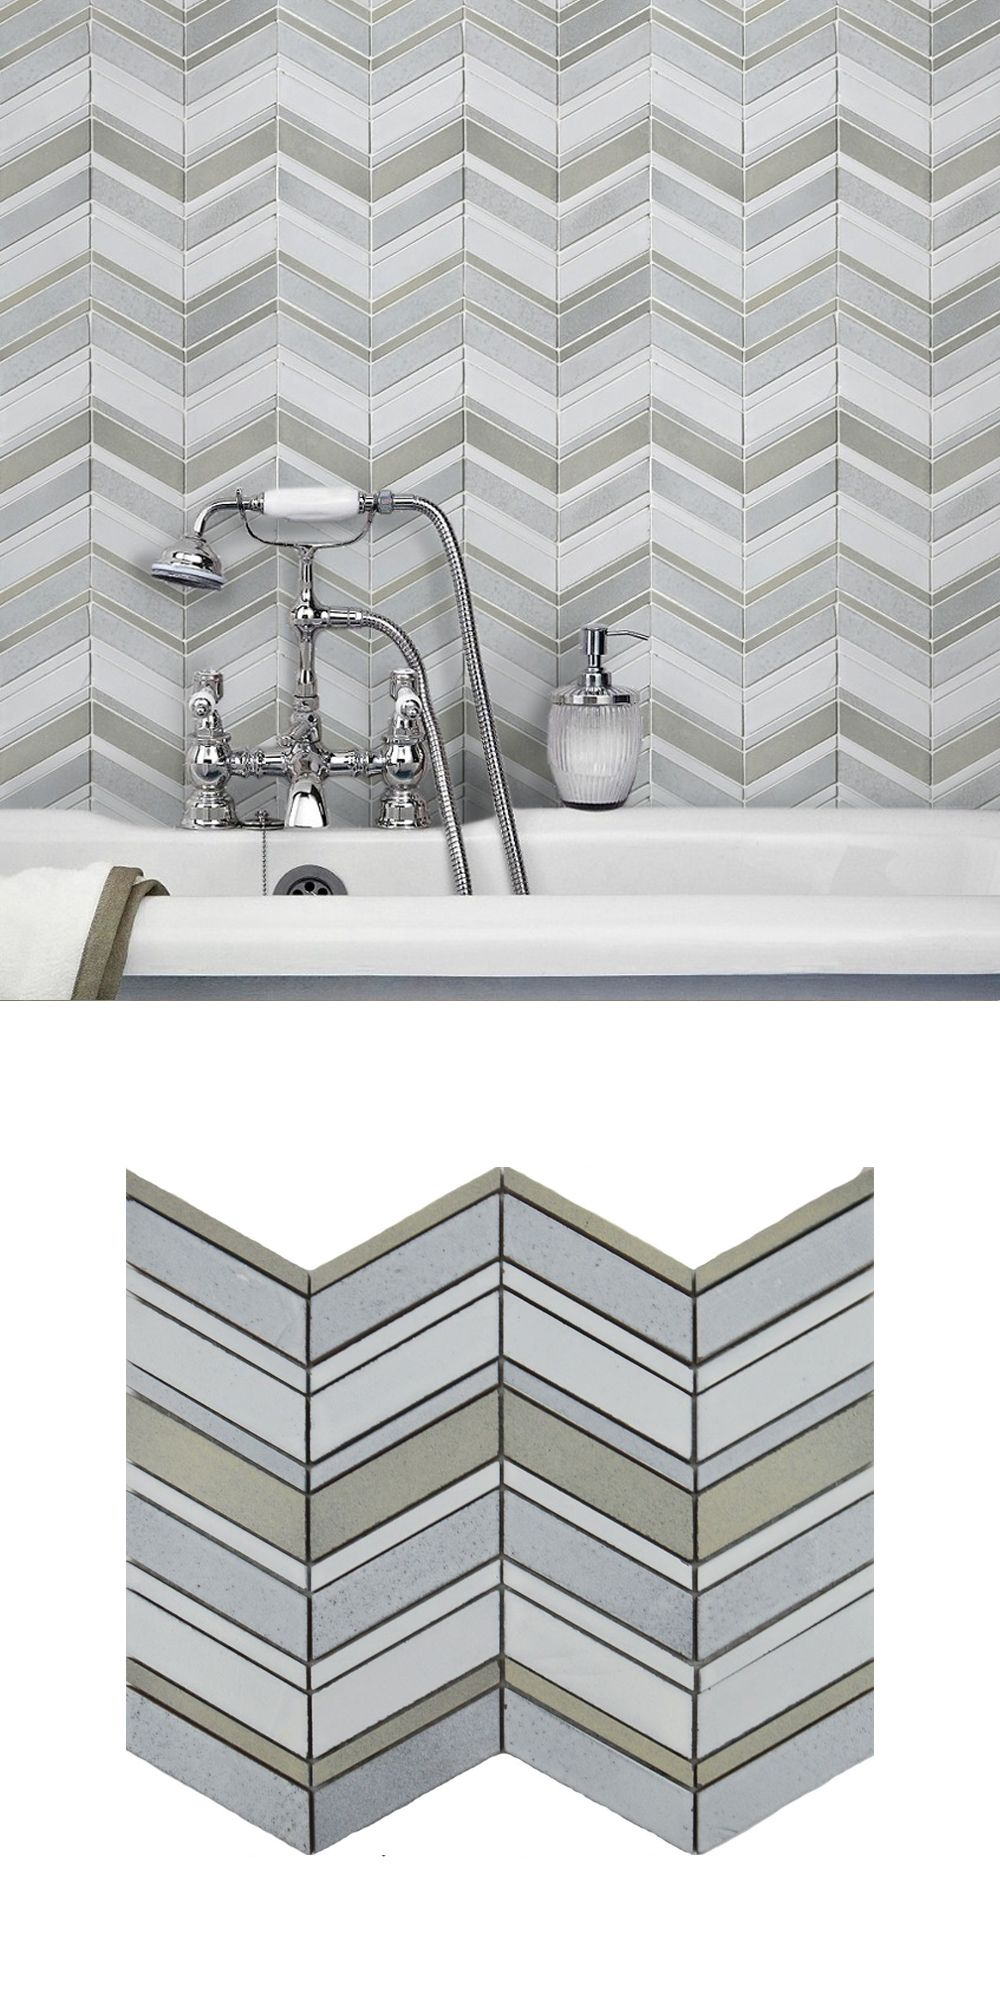 Conservatory Room Addition In The Uk 1040x1485 In 2020: Made From Glazed Basalt, These Tephra Dusted Moon Chevron Mosaic Tiles Are Perfect For Creating